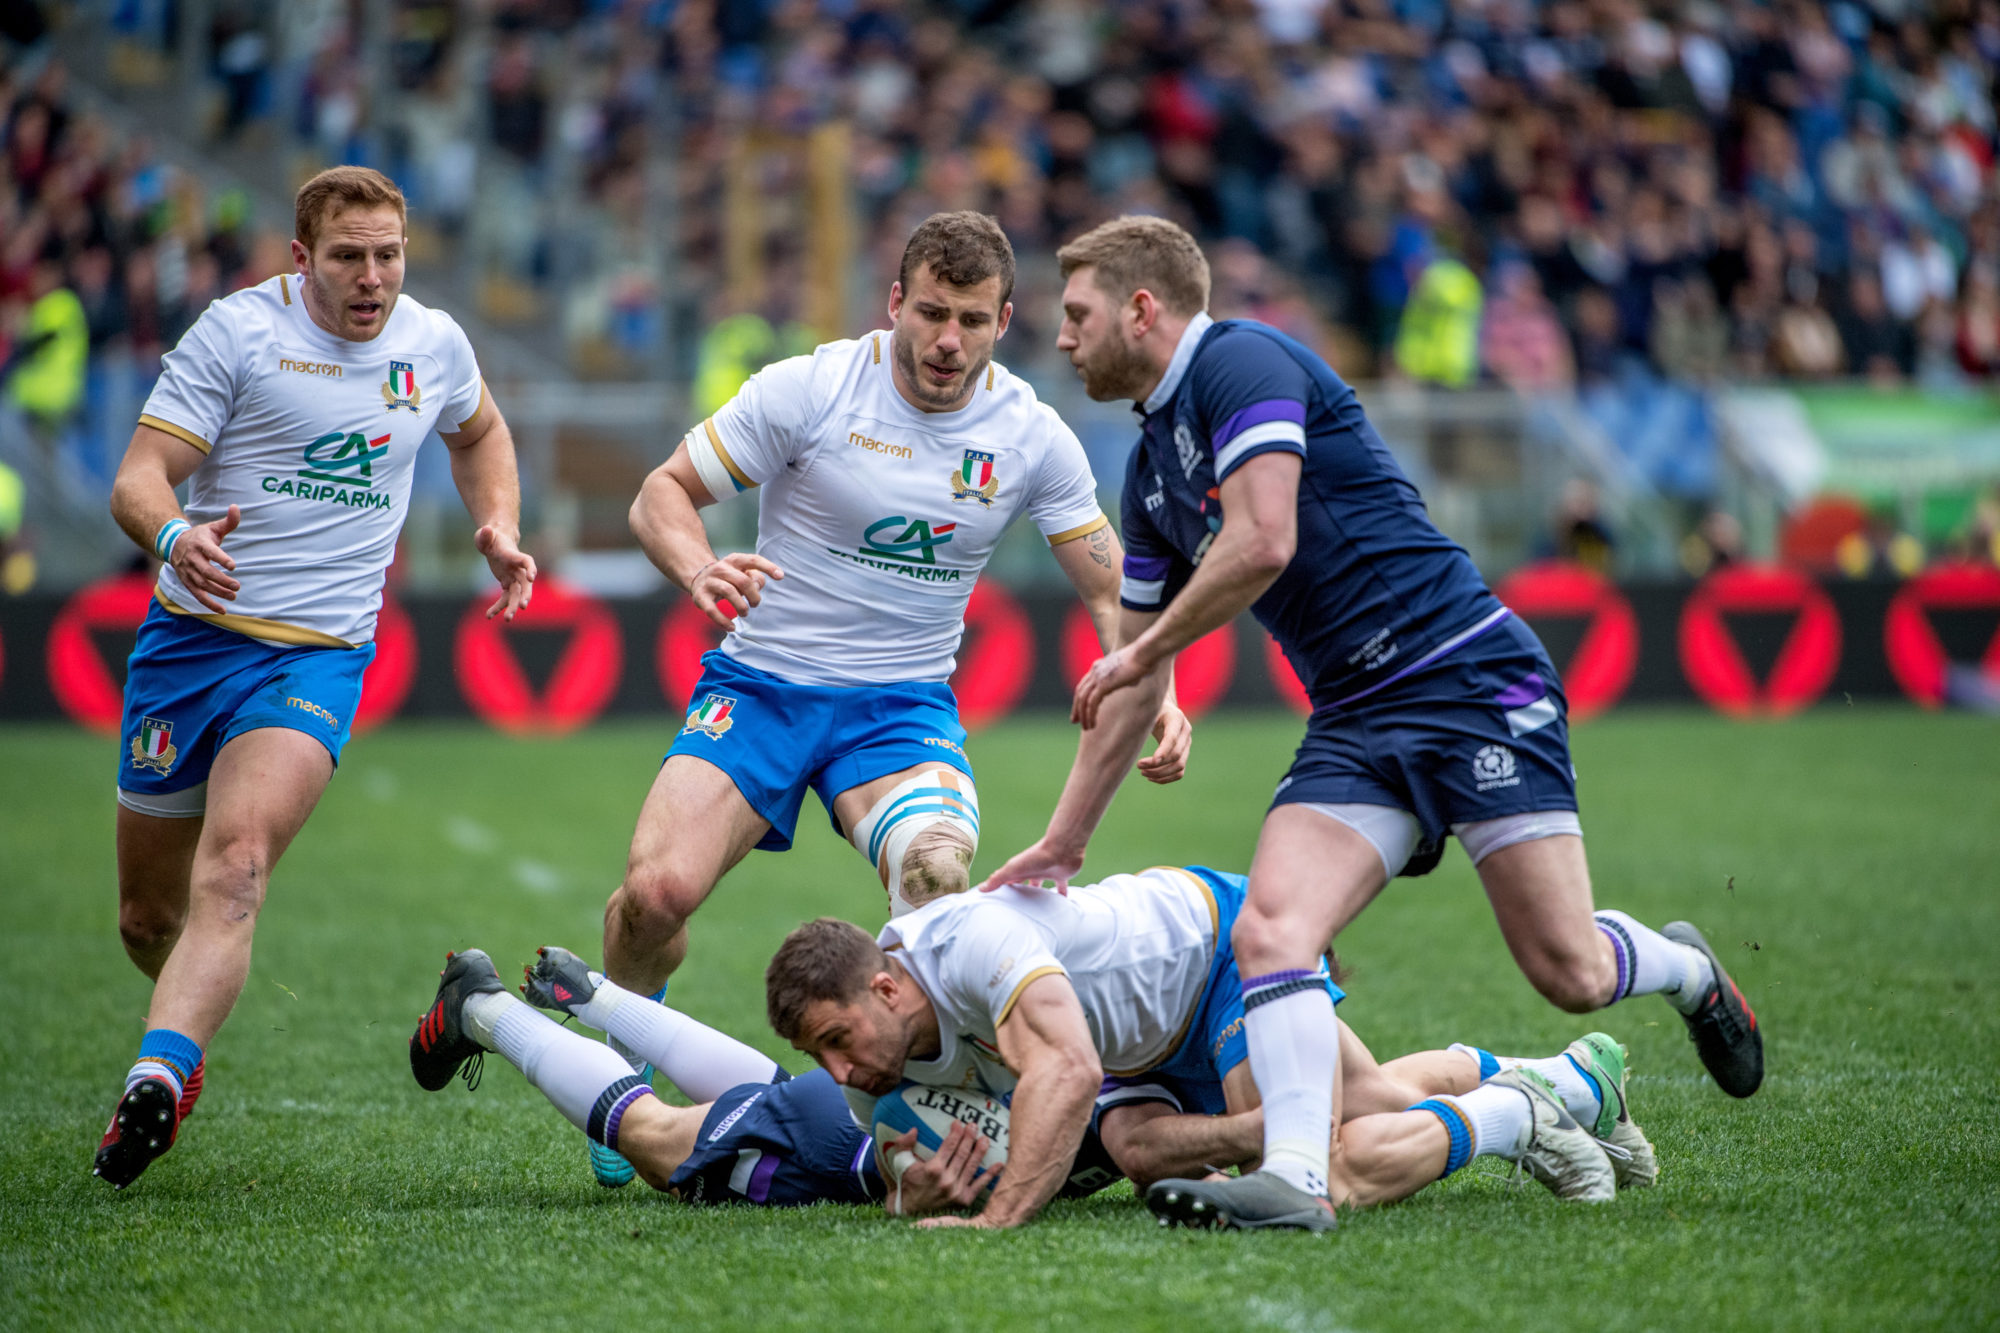 Foto di ItalRugby: 6Nations ItavsSco